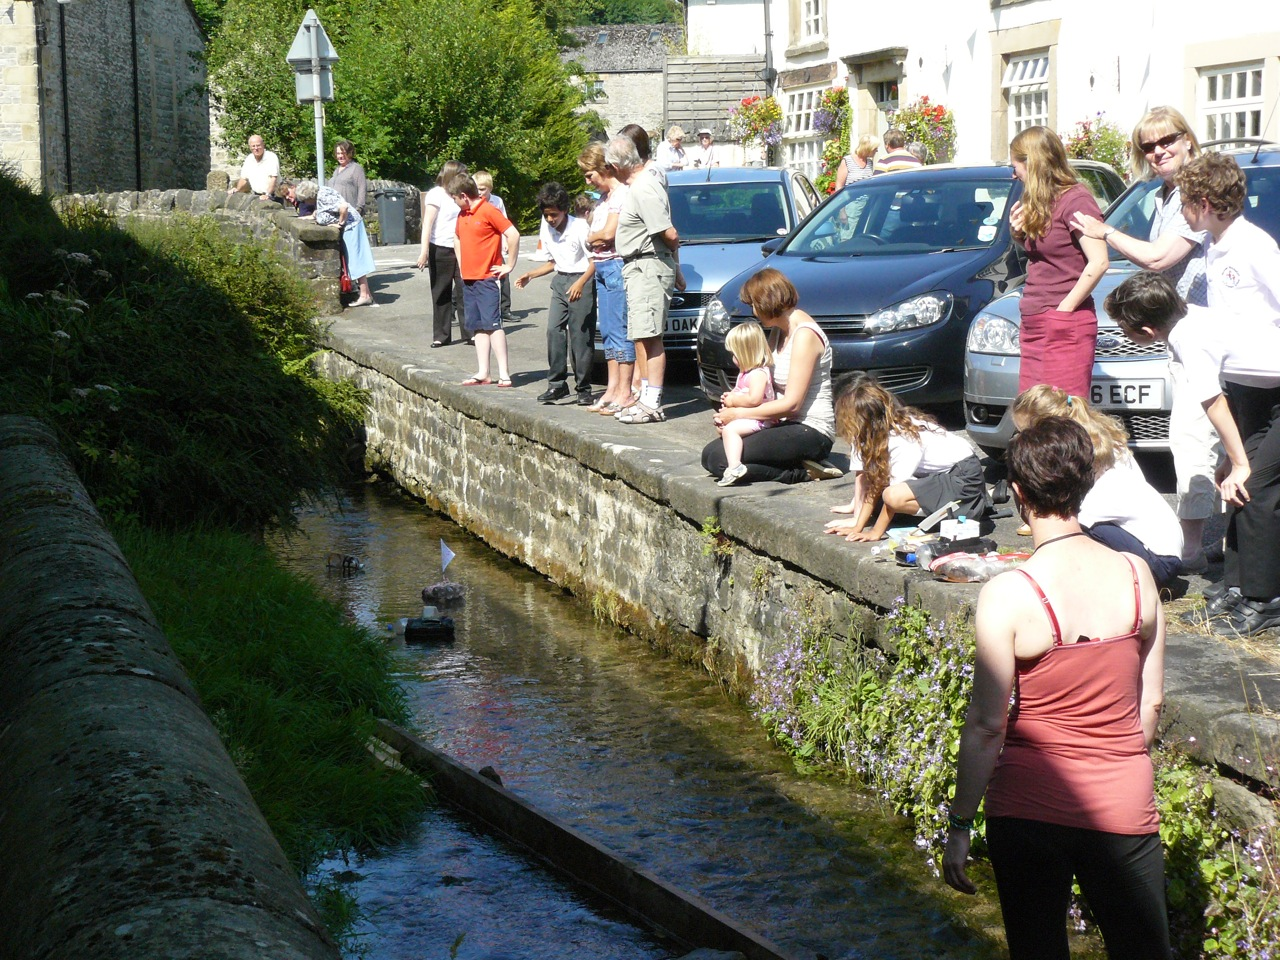 boat-race-in-the-Brook1